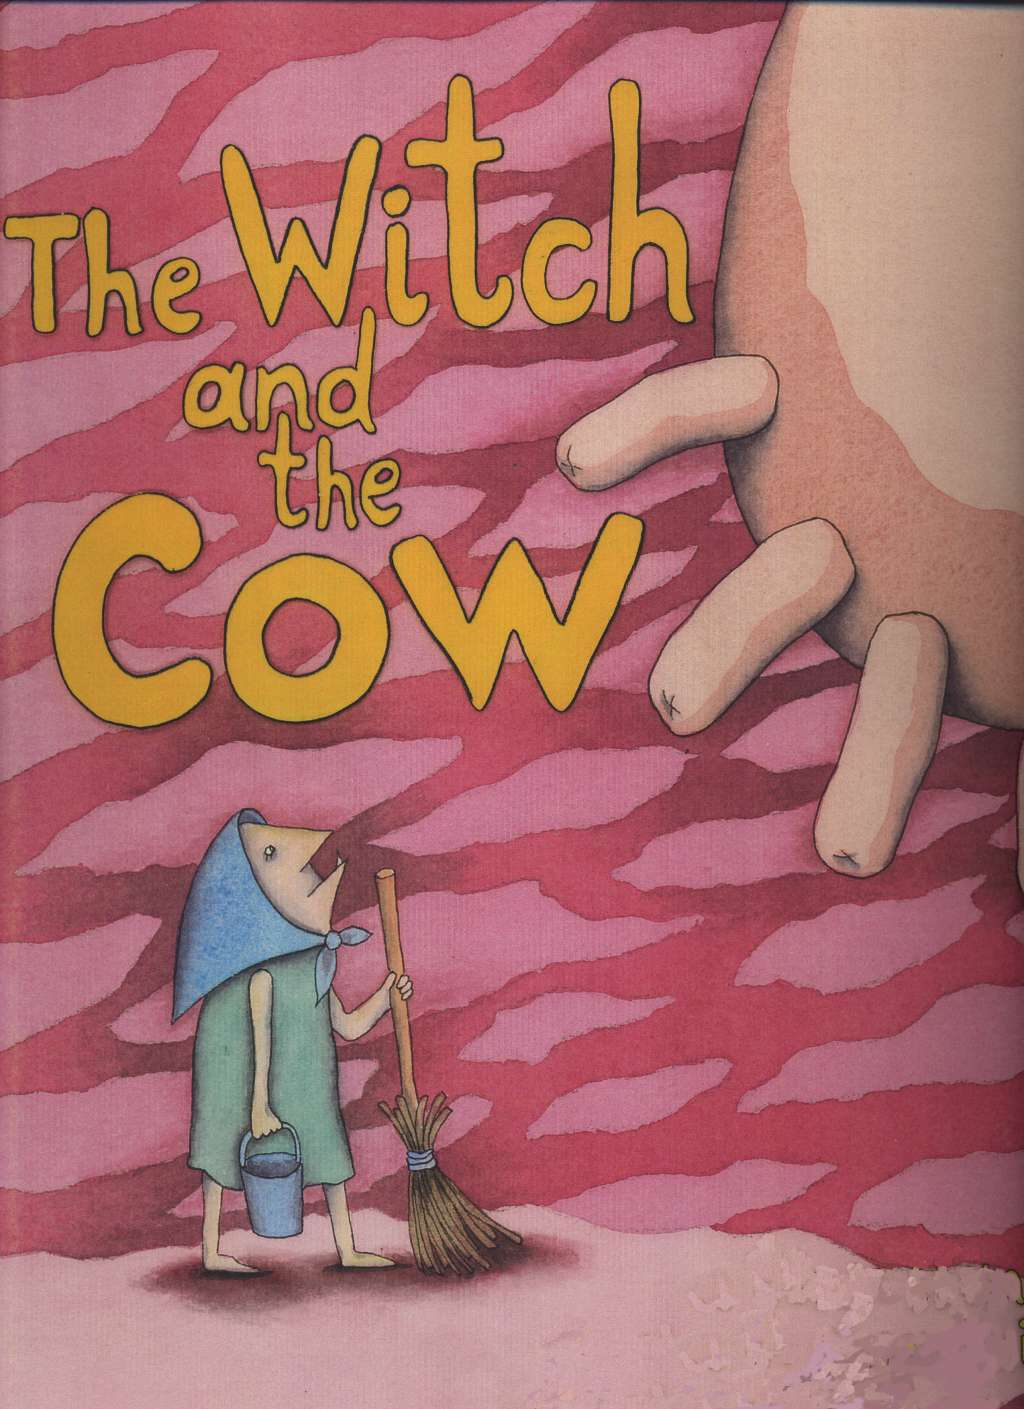 The Witch and the Cow kapak